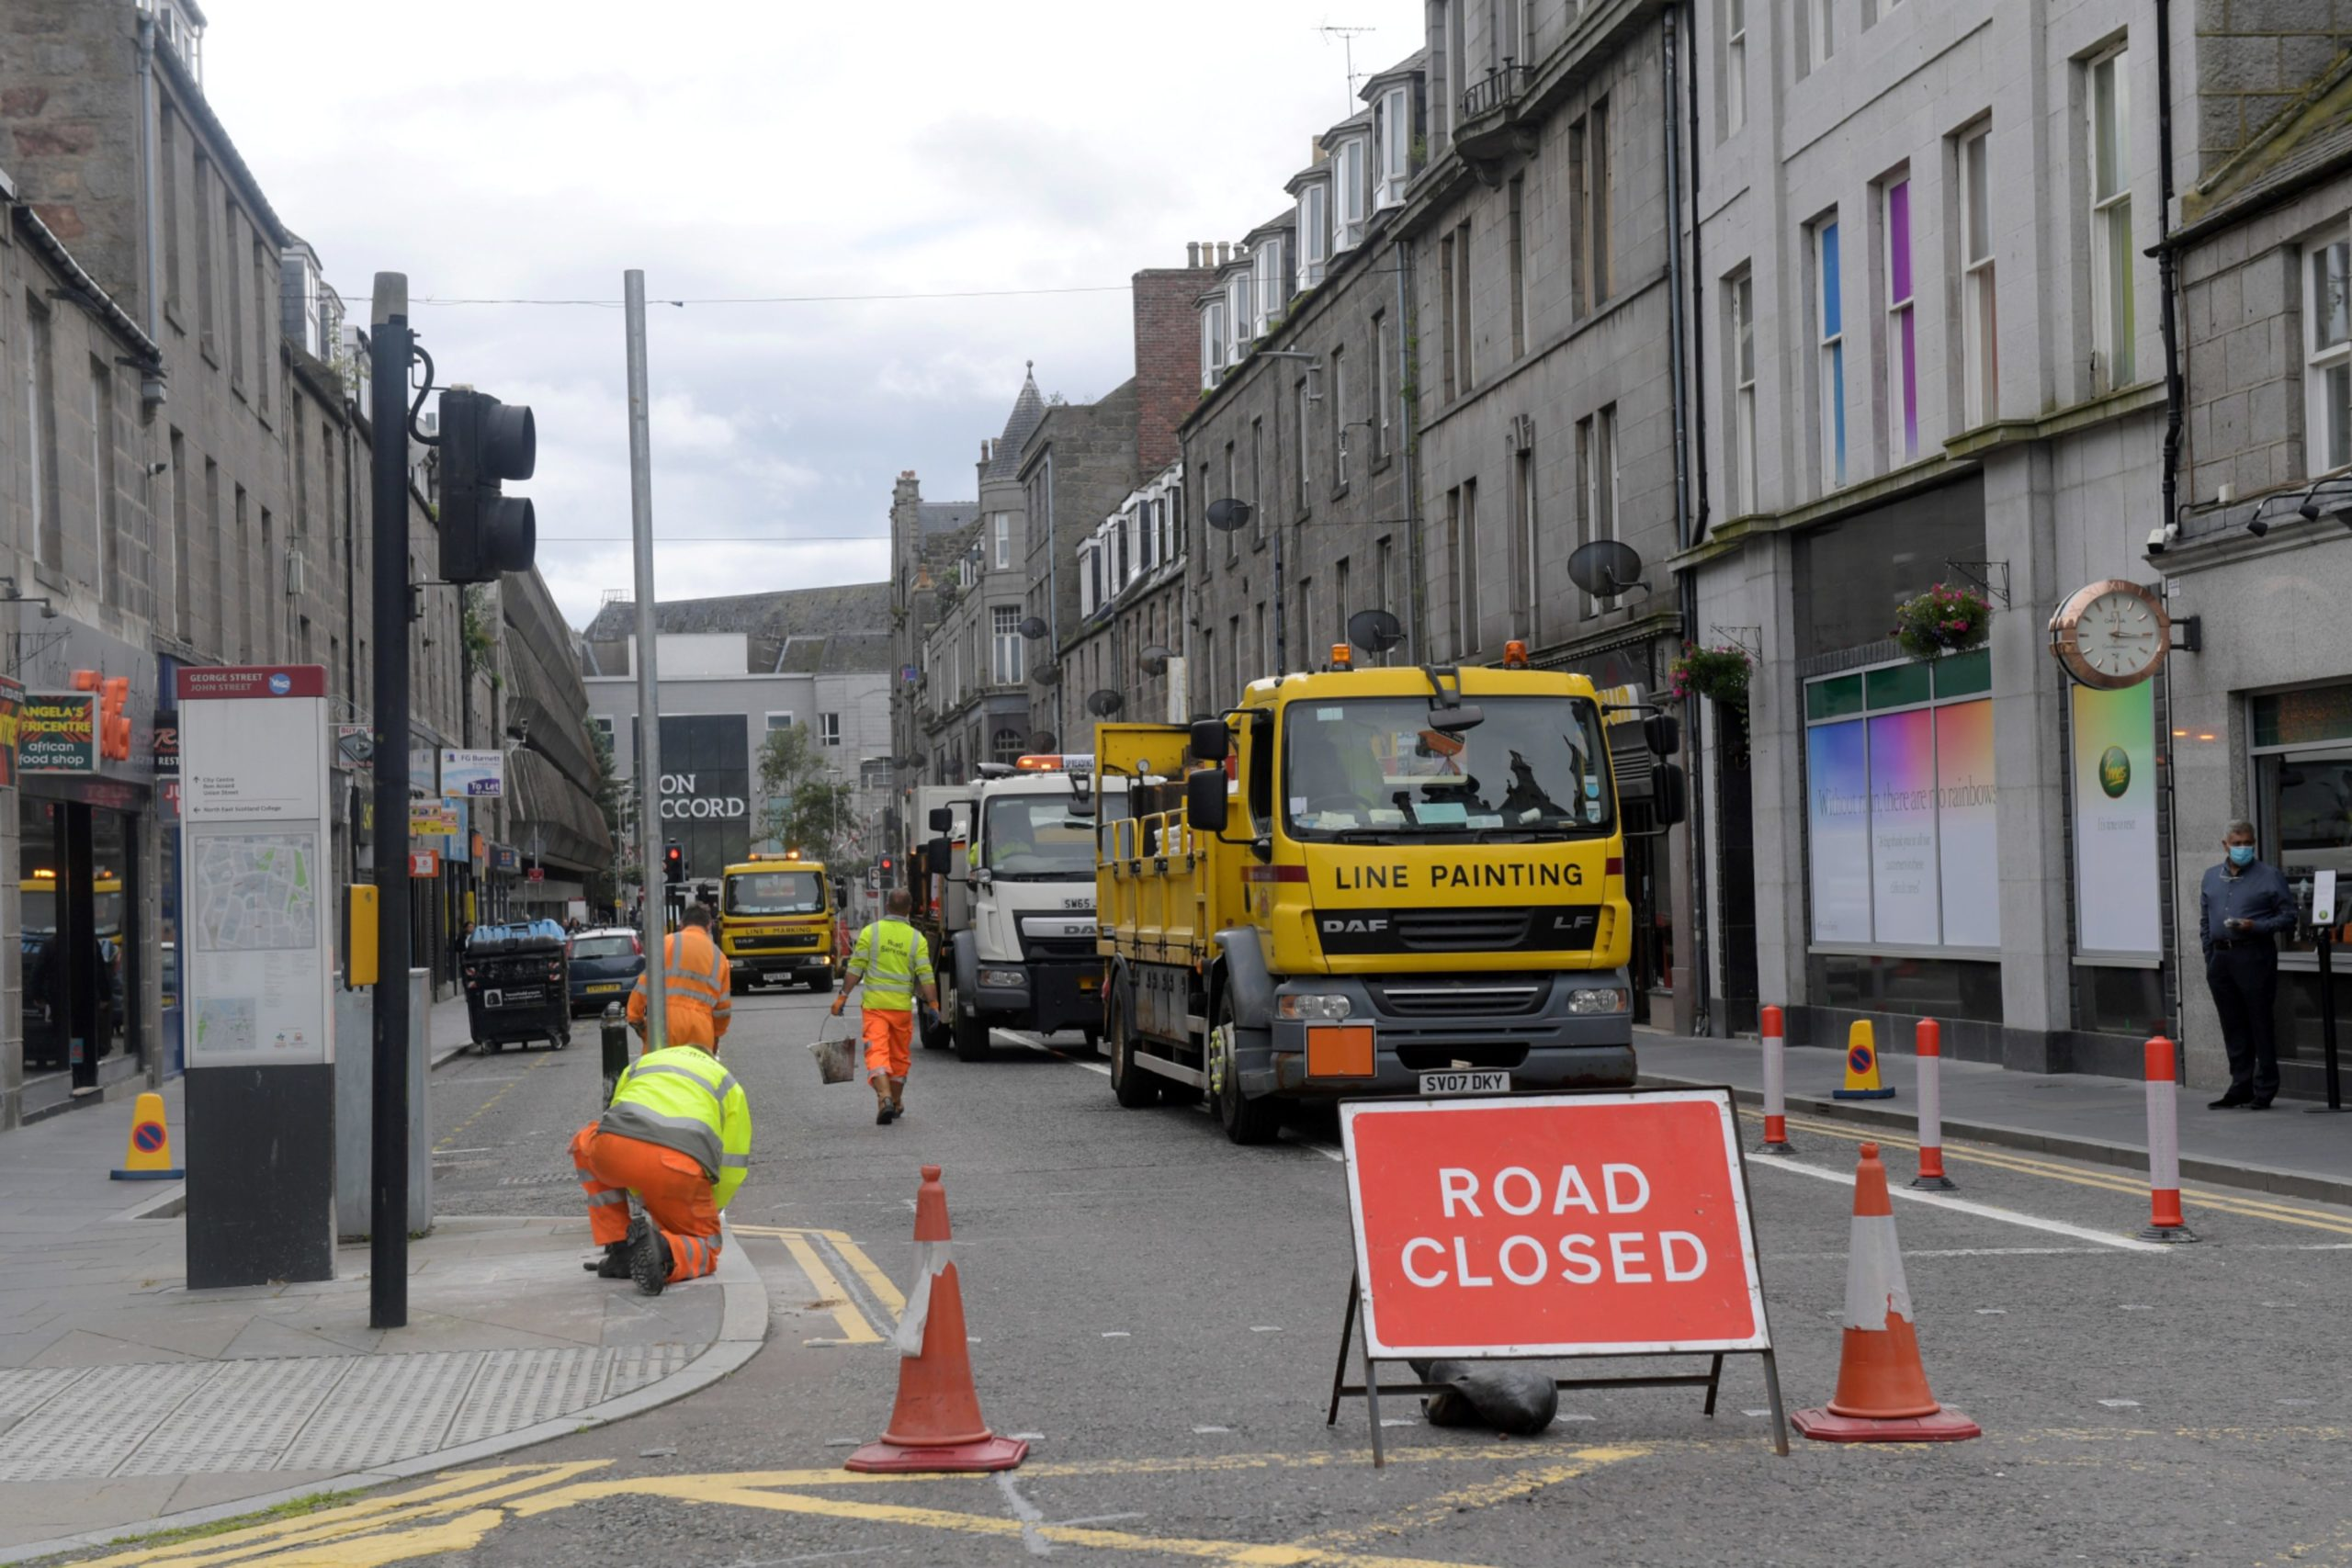 Work is continuing on measures to aid social distancing around George Street